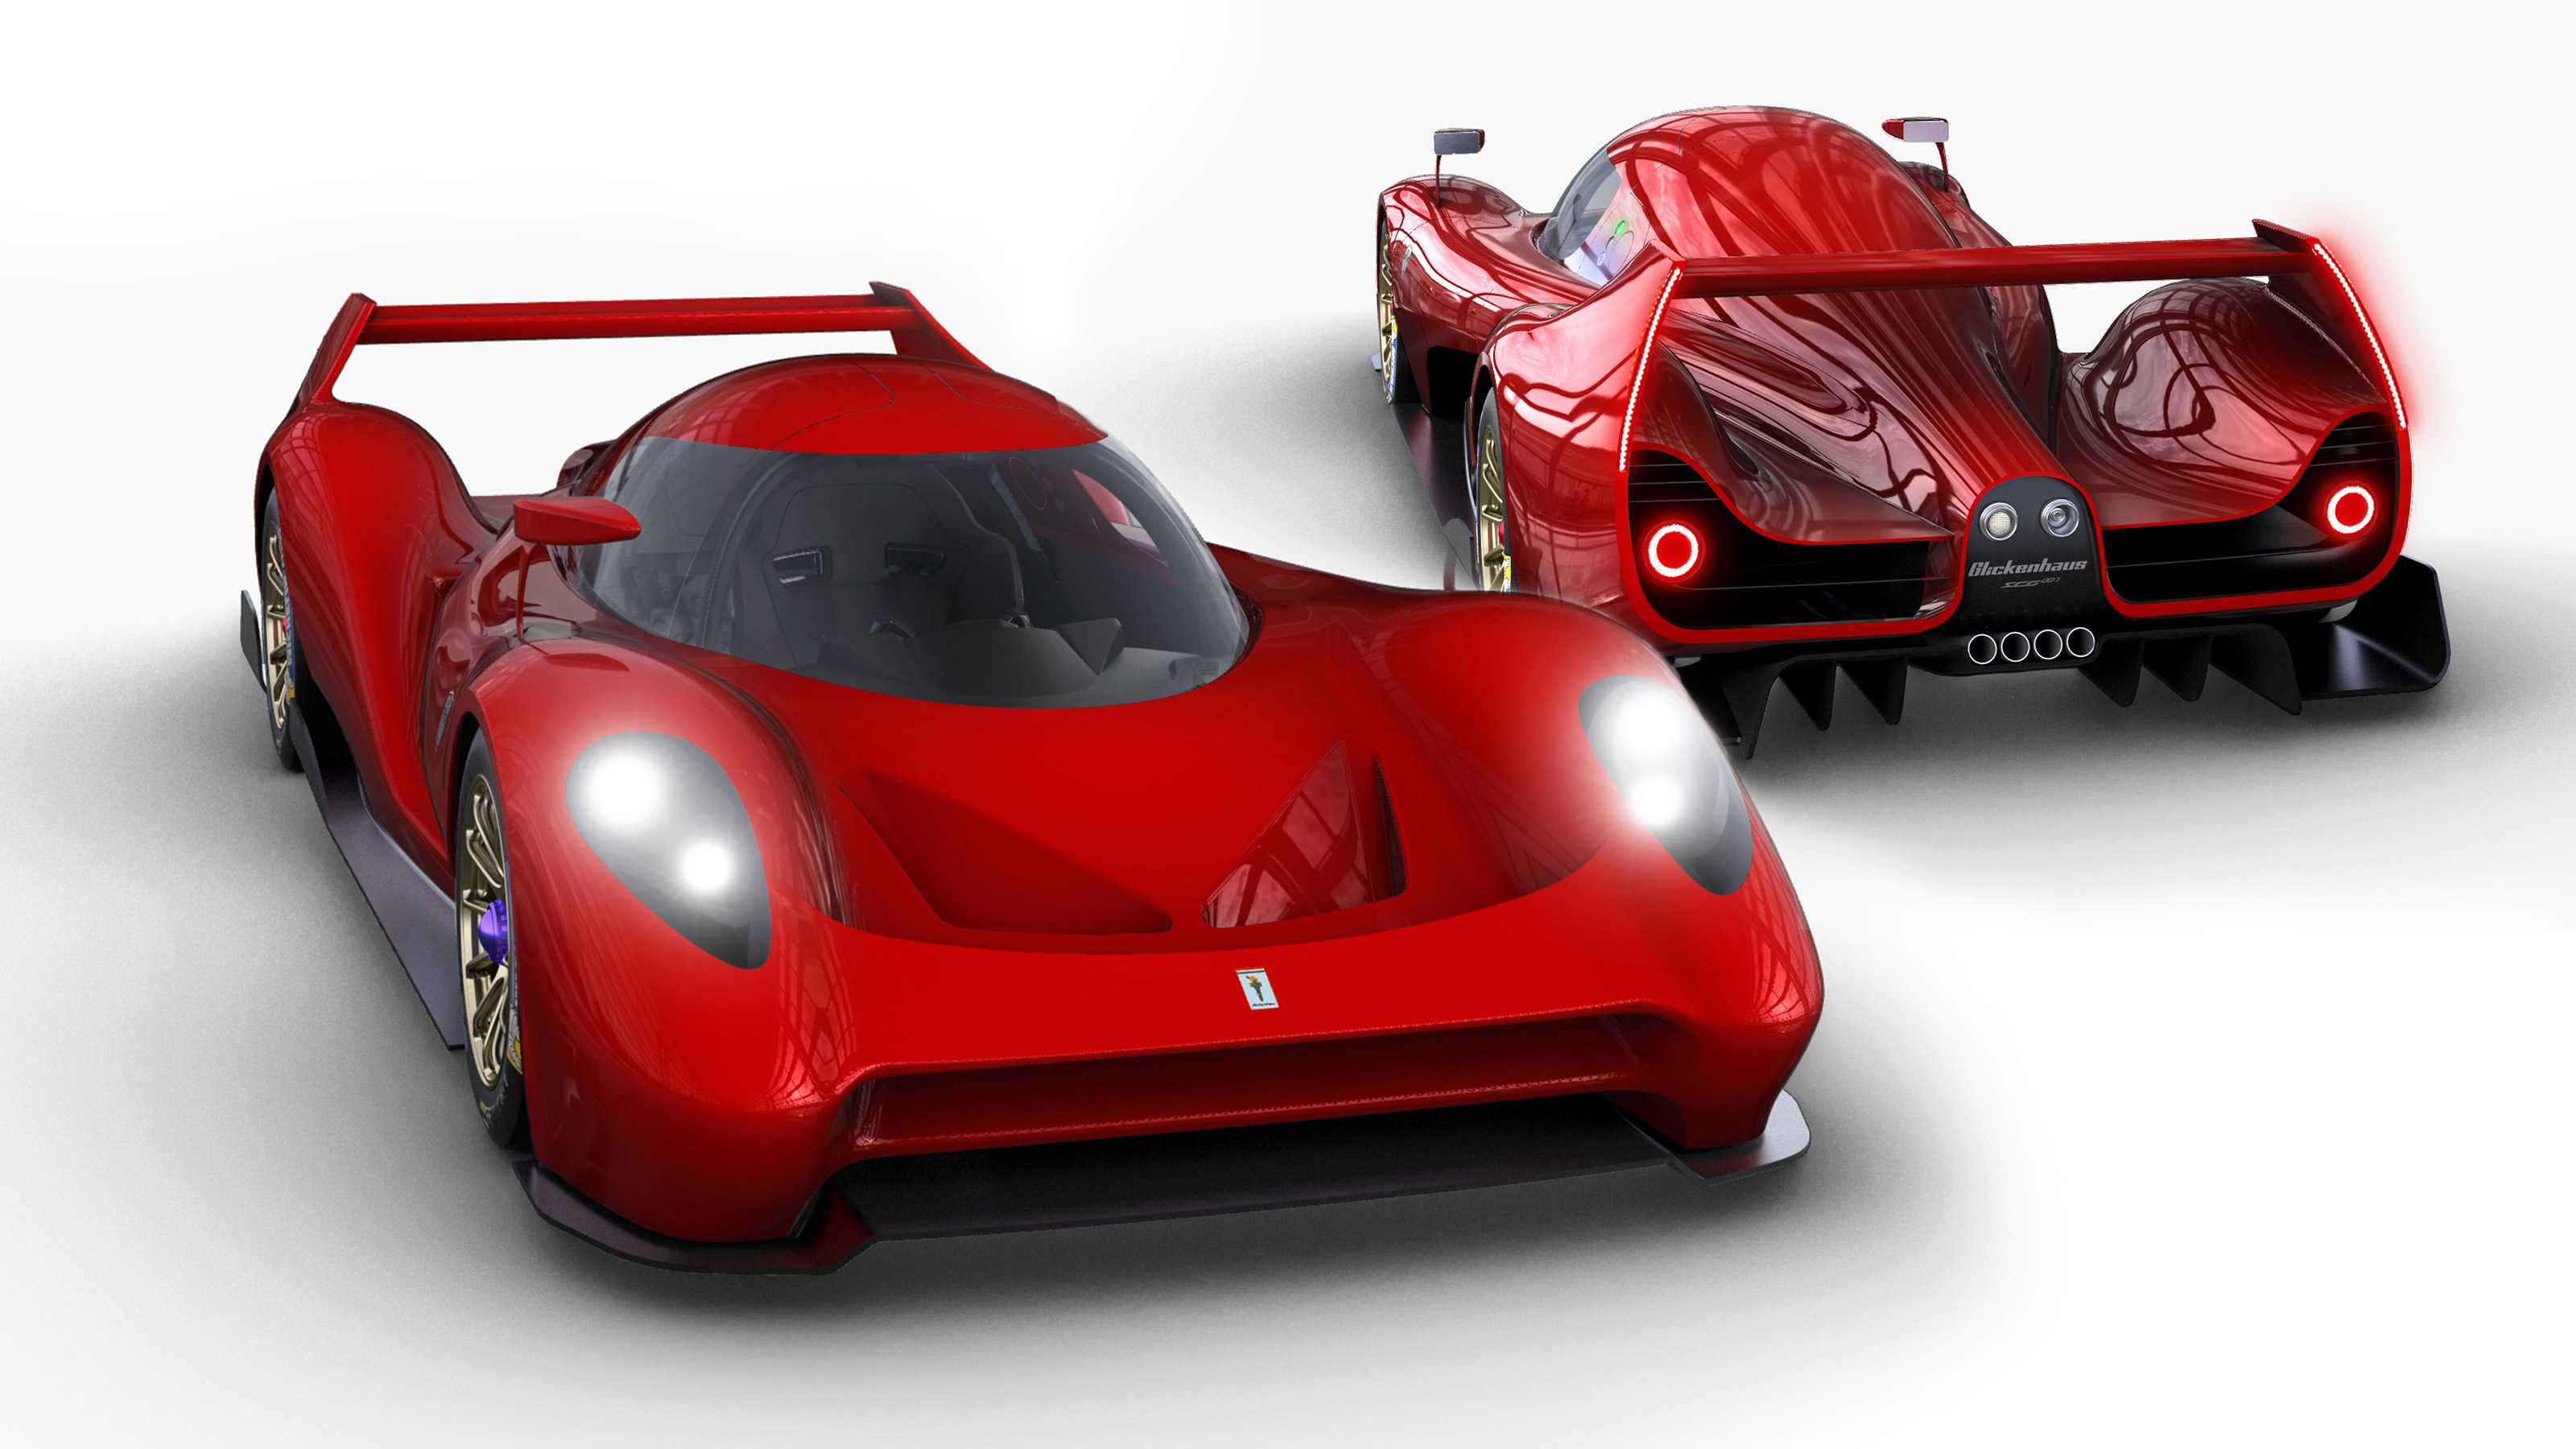 Glickenhaus 007 Le Mans hypercar to receive twin-turbocharged V8